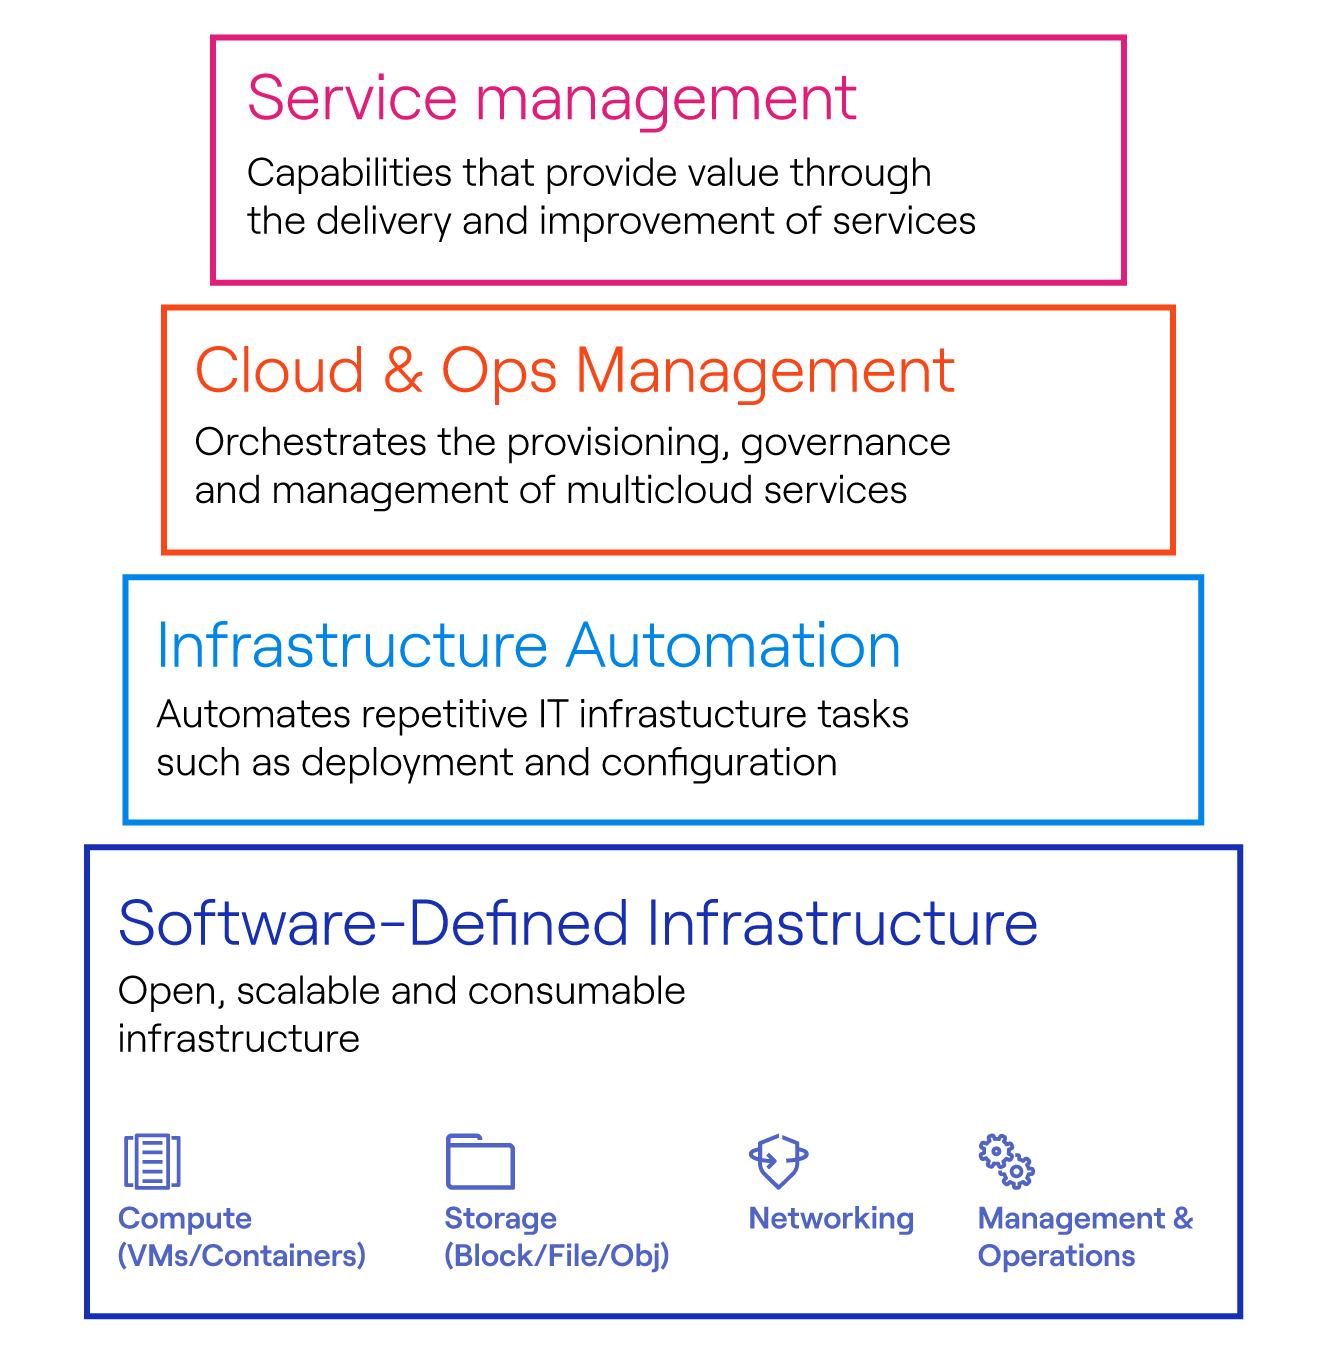 Infographic for a private cloud build, starting with software-defined infrastructure as the base